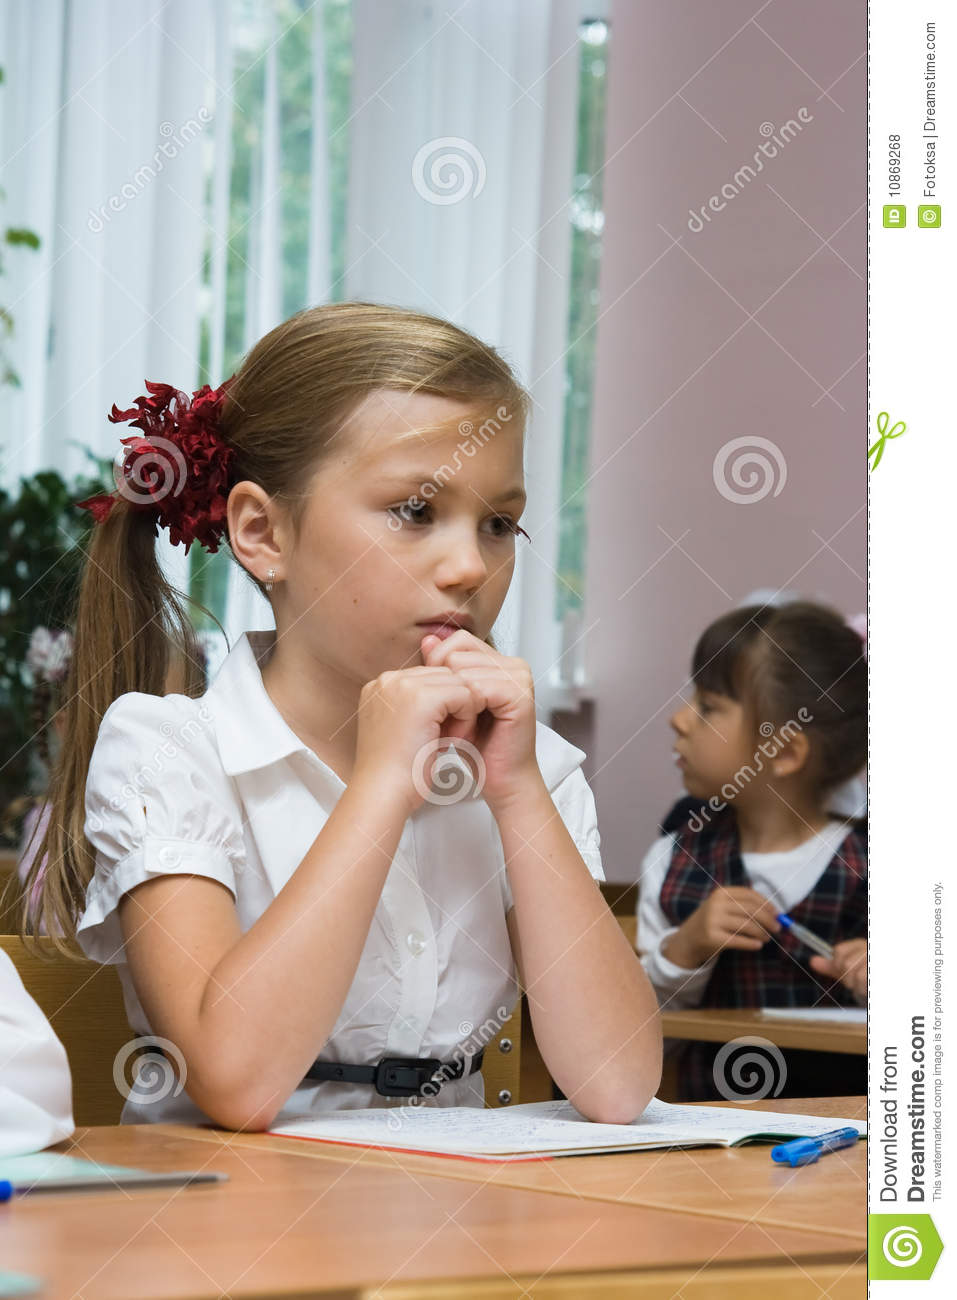 The Sad Girl Sits At A School Desk Royalty Free Stock ...